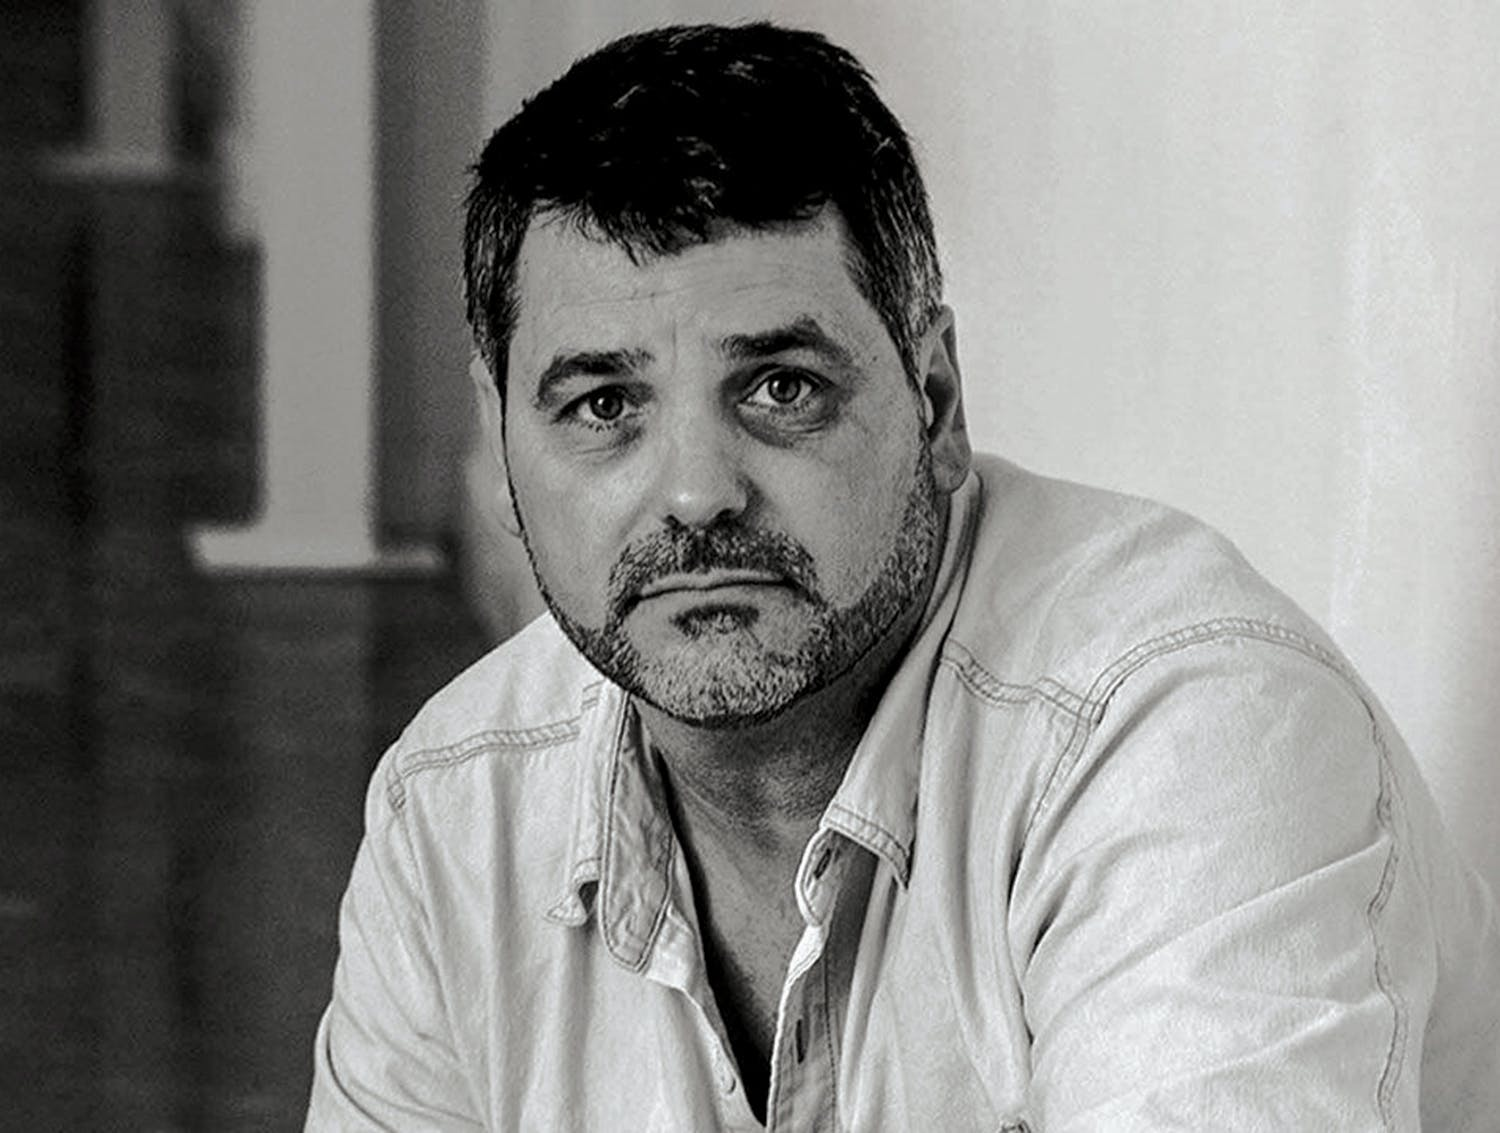 Jeff Leach, photographed for a Gulf News article published in December 2010.